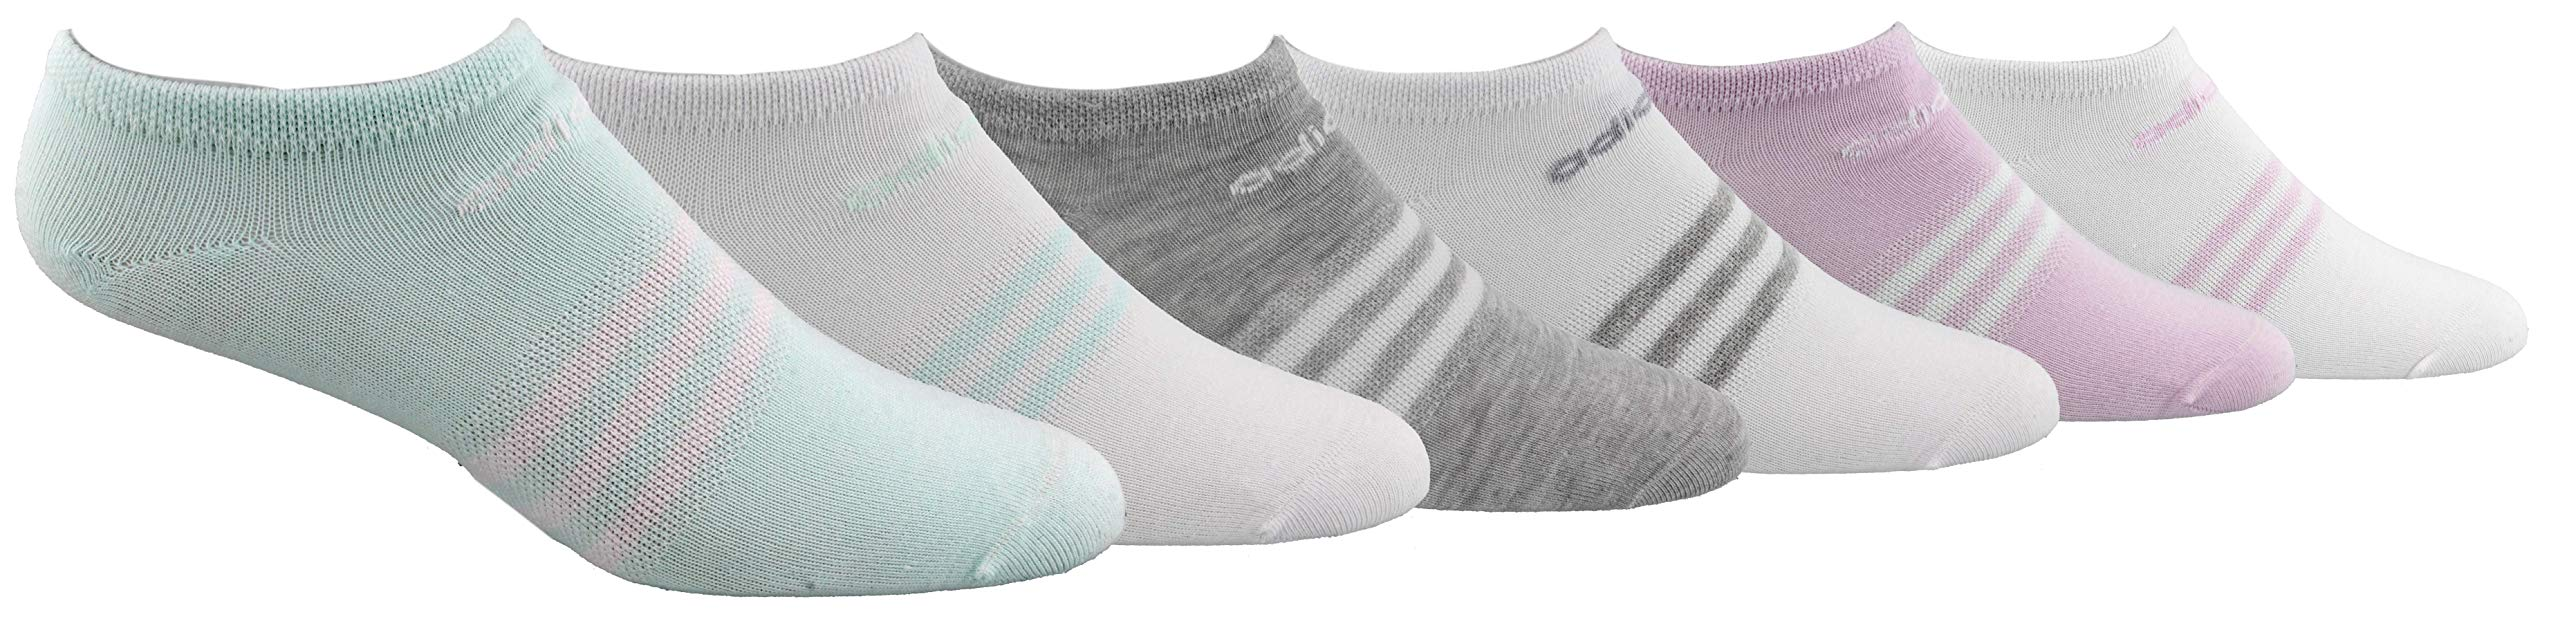 adidas Women's Superlite No Show Socks (6-Pair), Ice Mint/White White/Ice Mint Cool Light Heather/W, Medium, (Shoe Size 5-10) by adidas